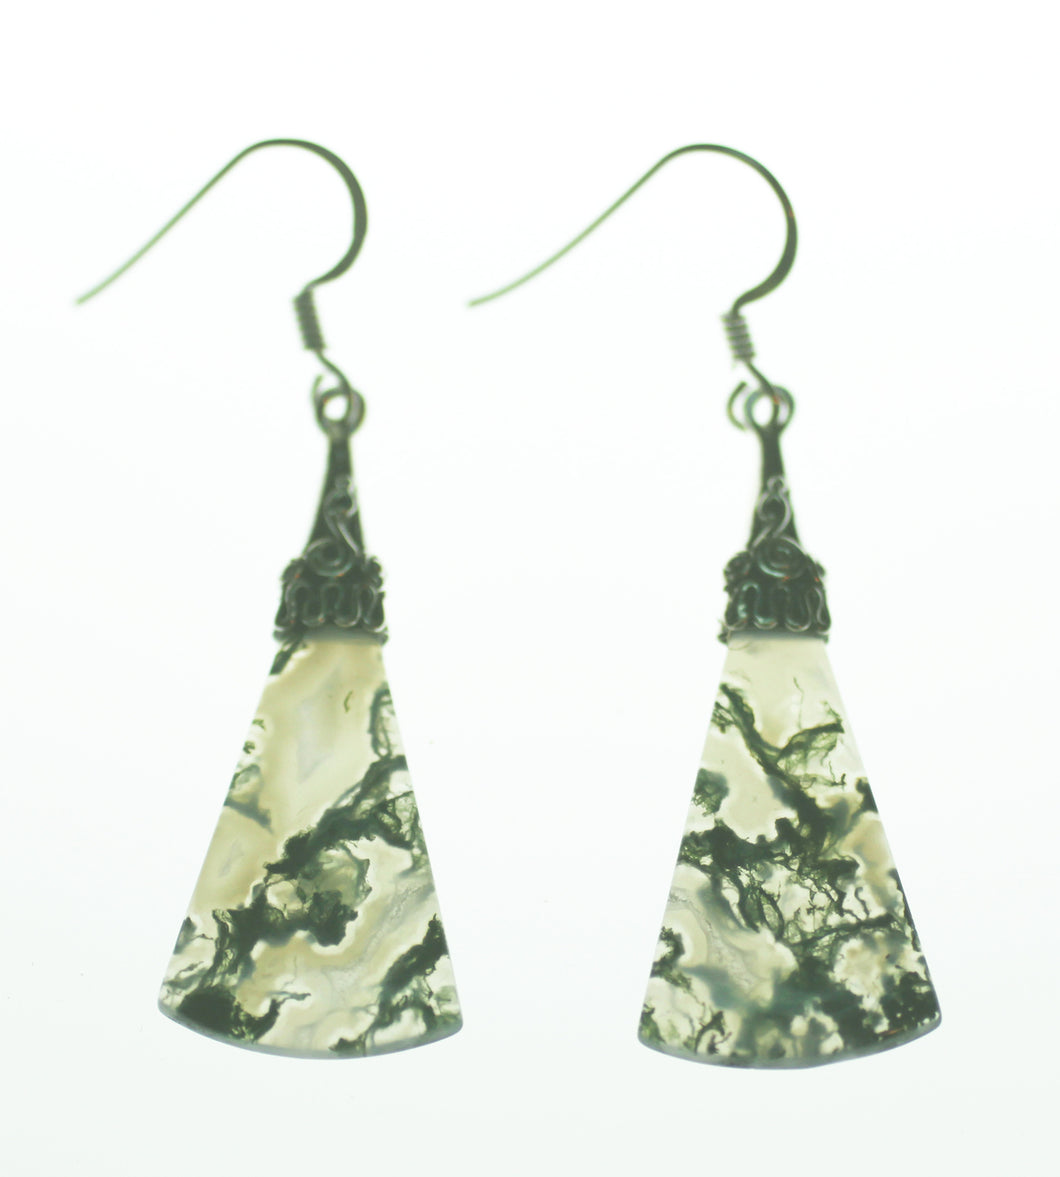 Moss Agate Earrings with Silver Filigree Cap